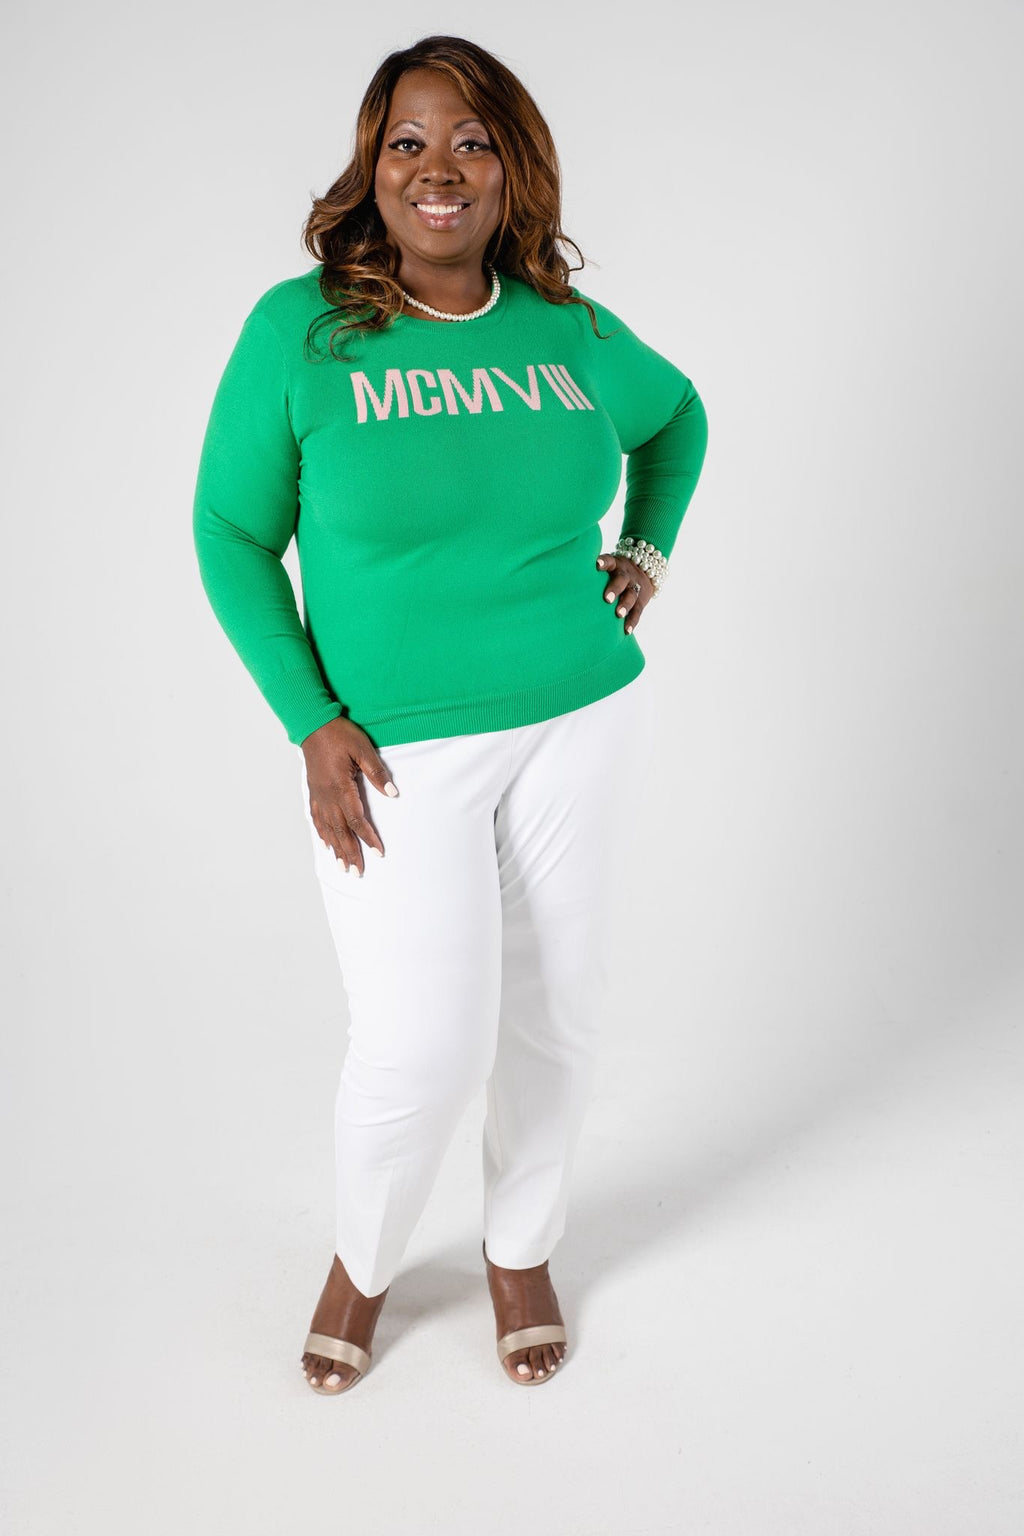 1908 Roman Numeral Sweater - Green